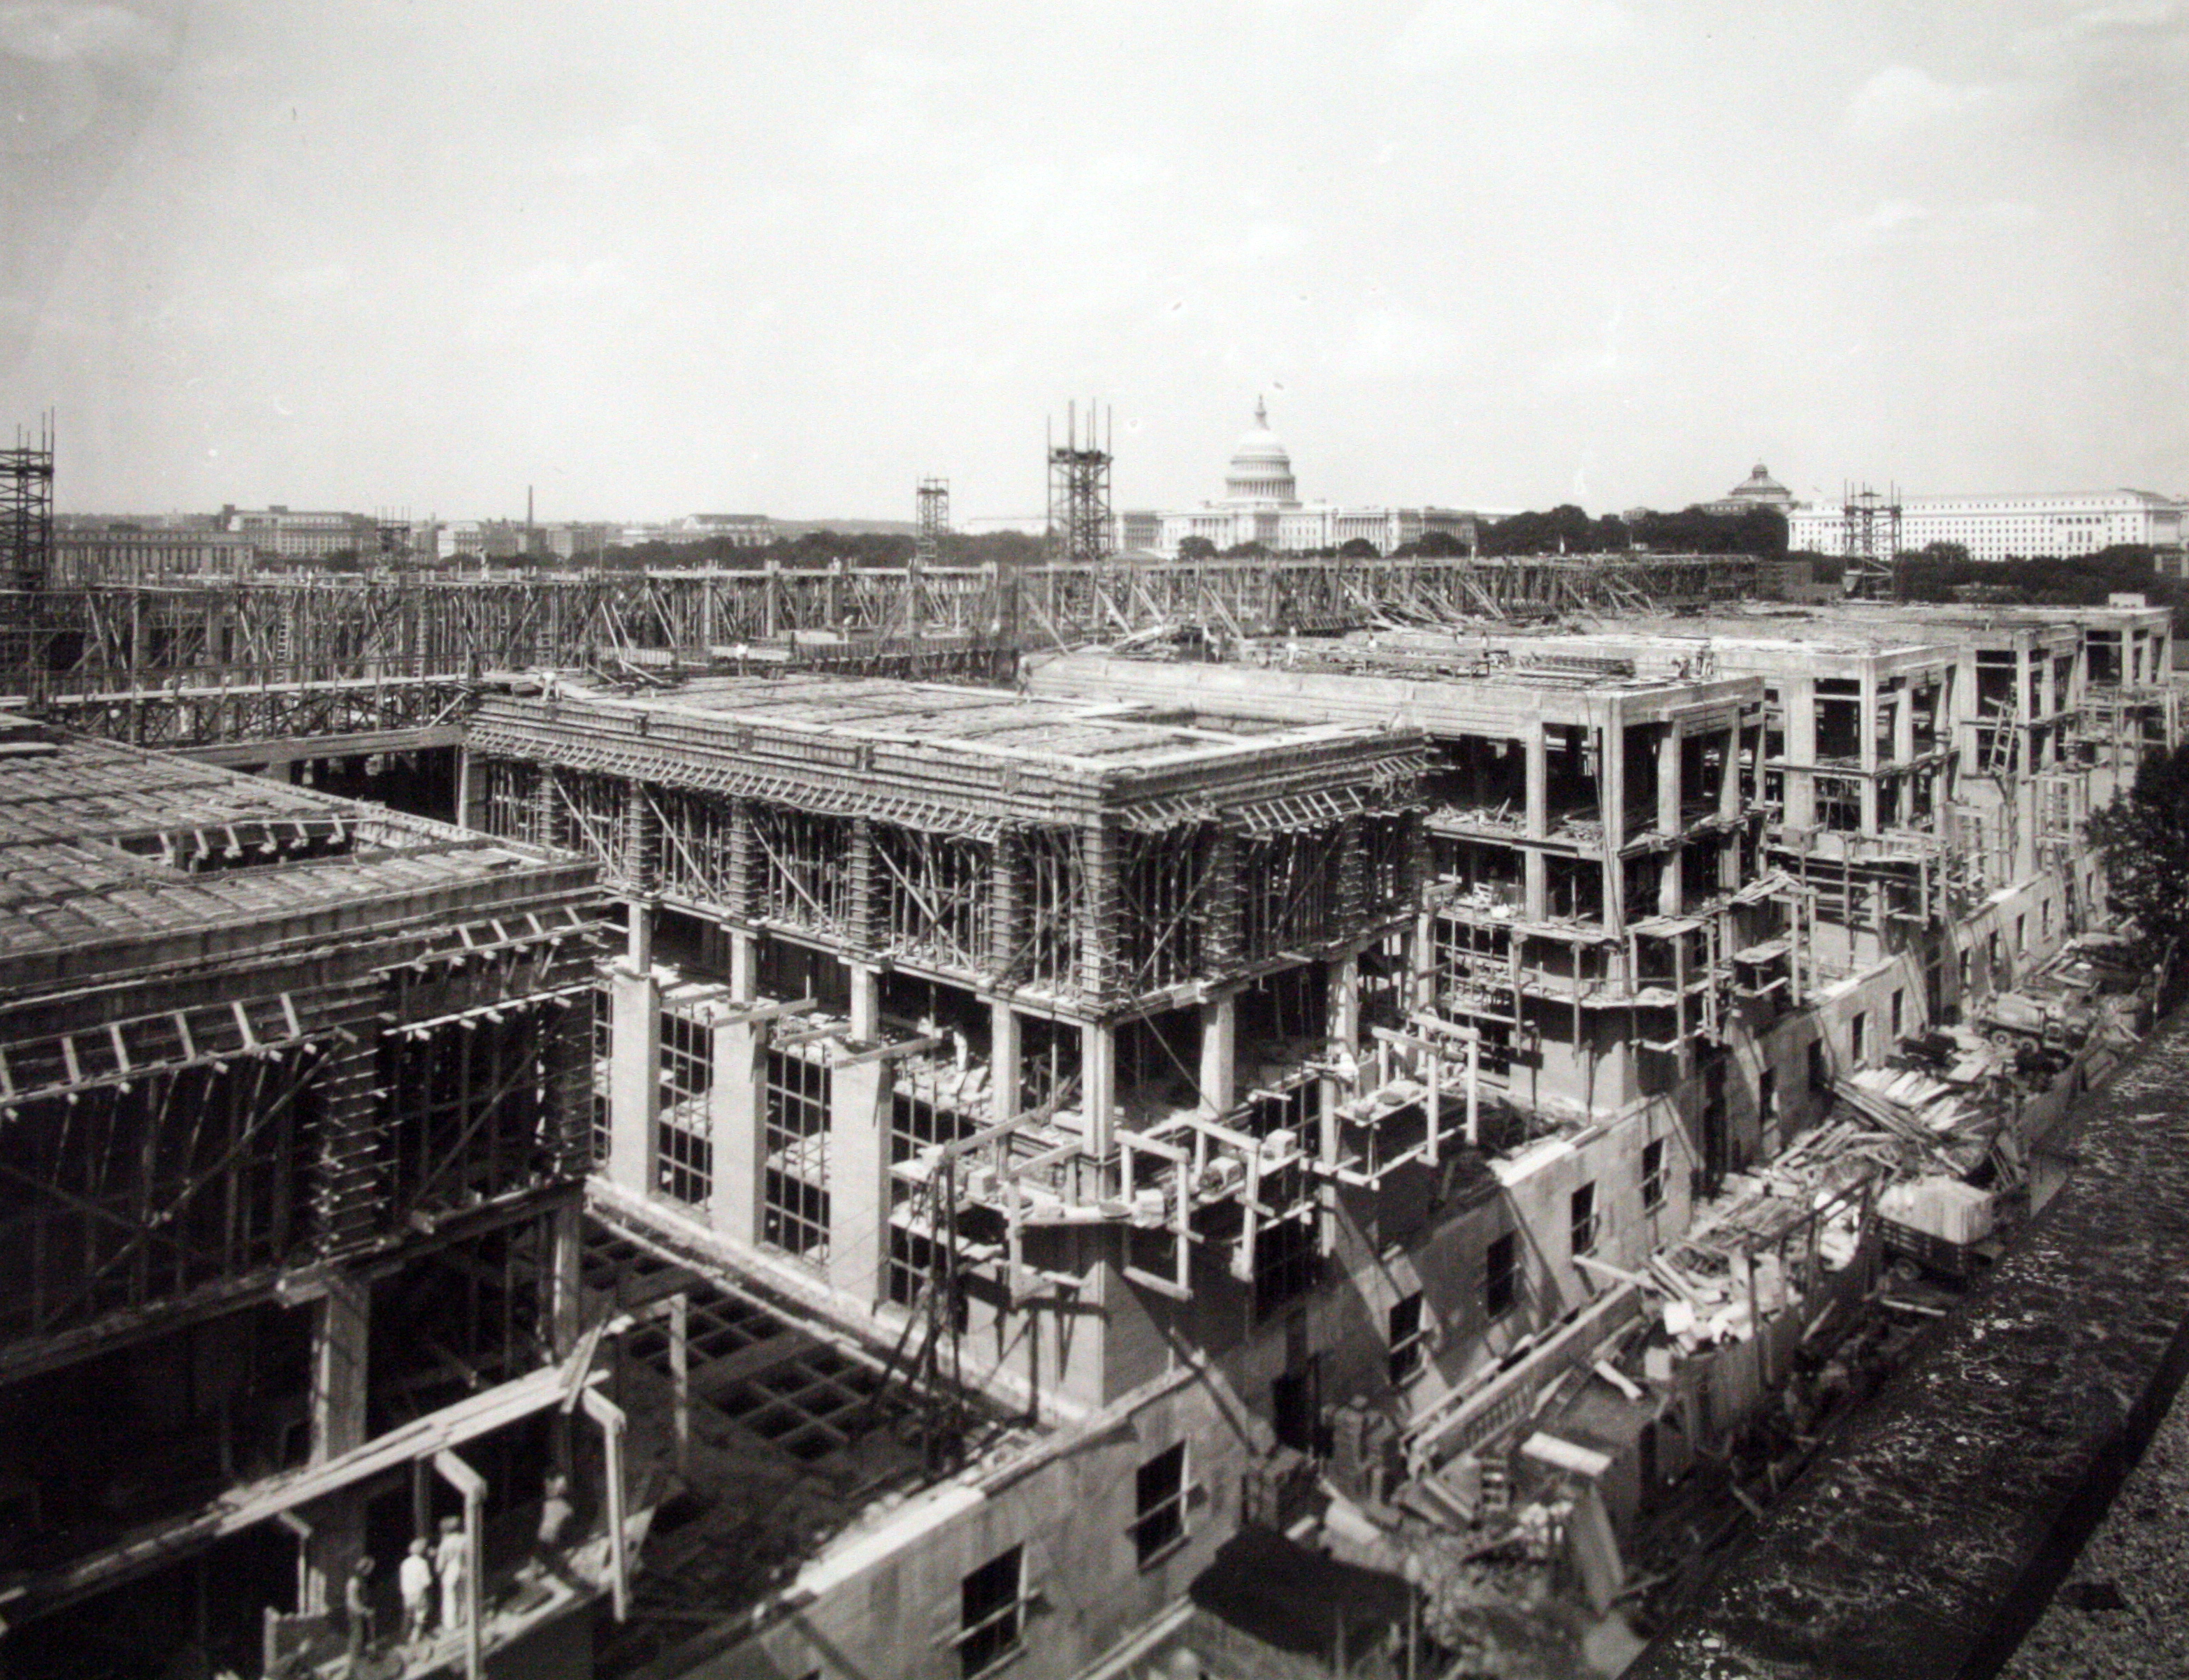 Wilbur J. Cohen Federal Building, View of Mid-Building Construction from C Street SW, 1939.